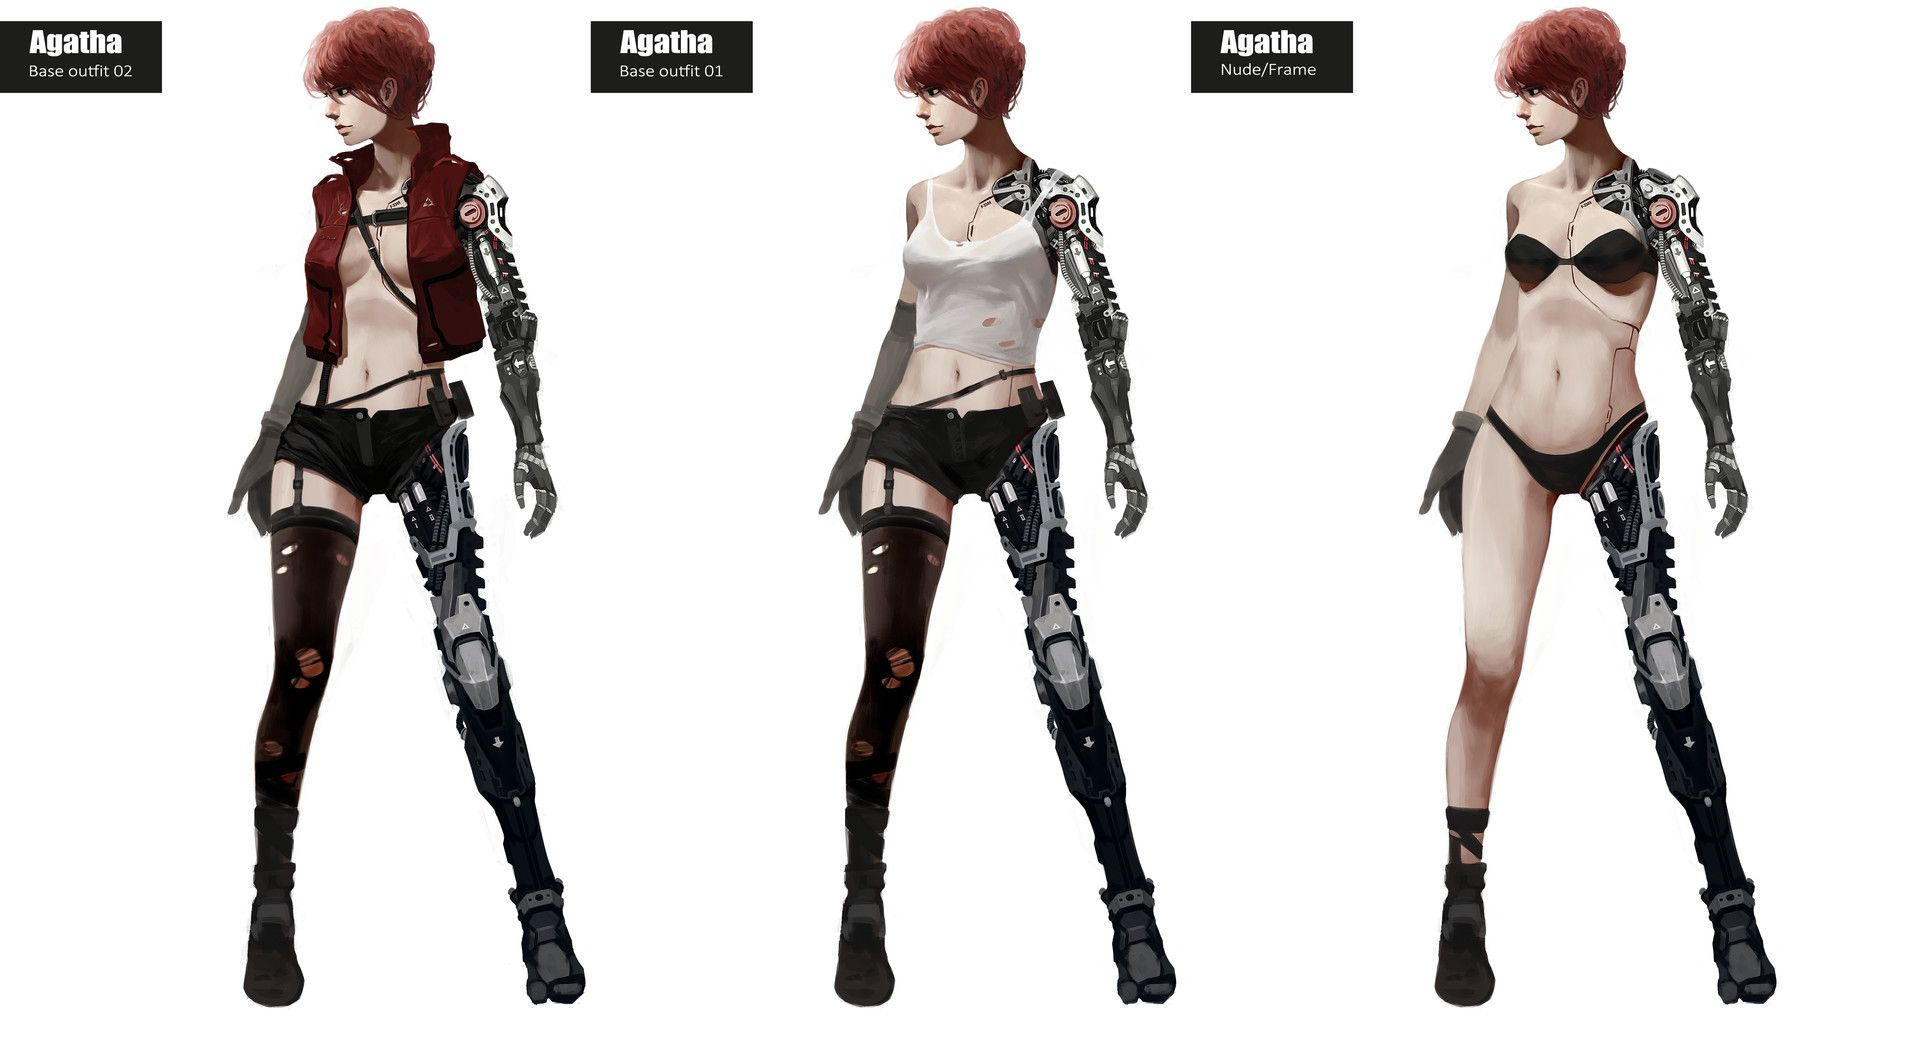 Character Design Side View : Artstation agatha tony sun concept art character